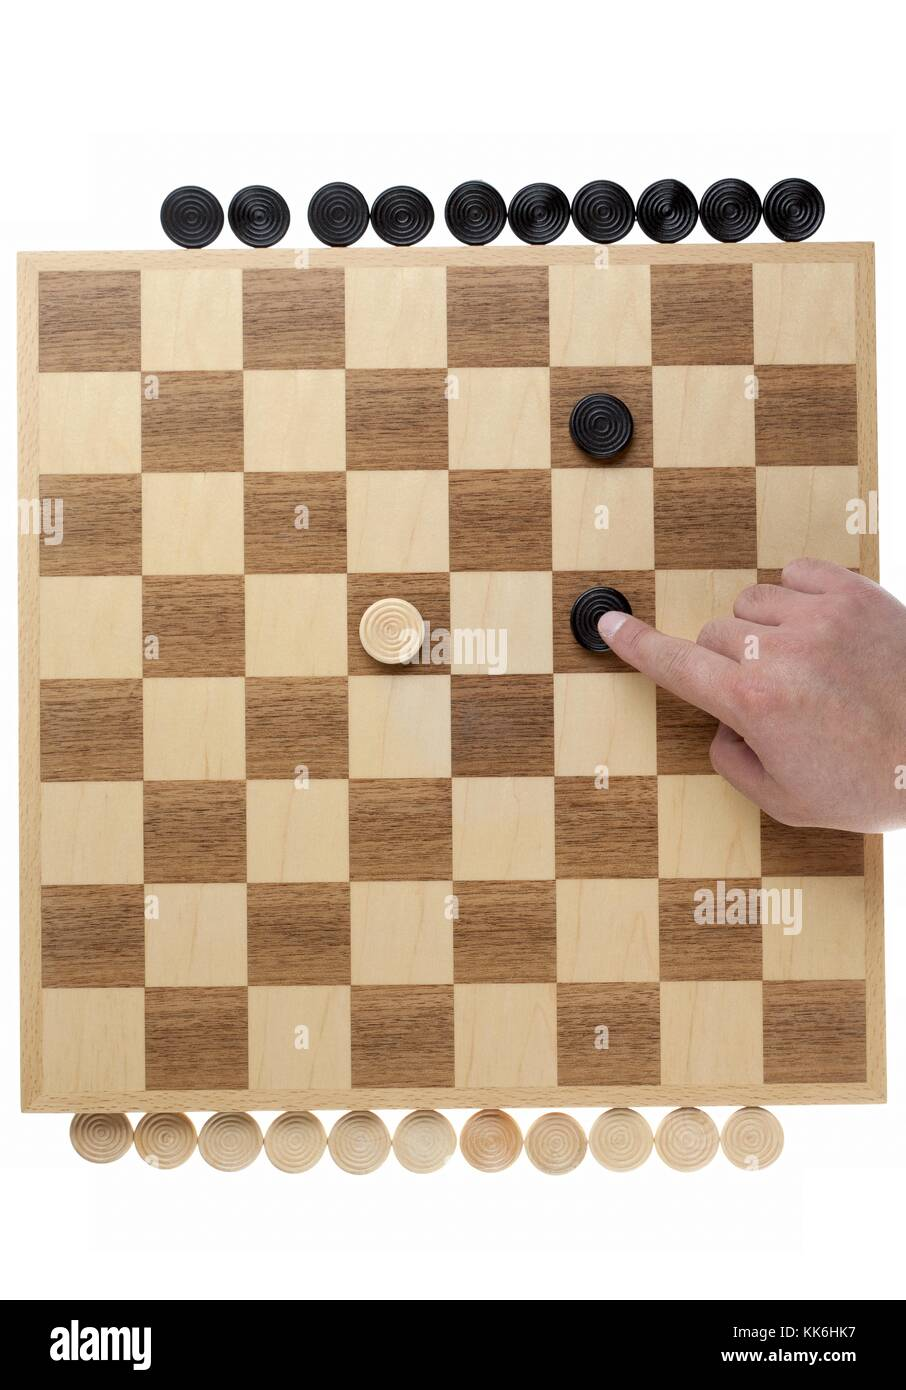 black greater than white on the checkers Stock Photo